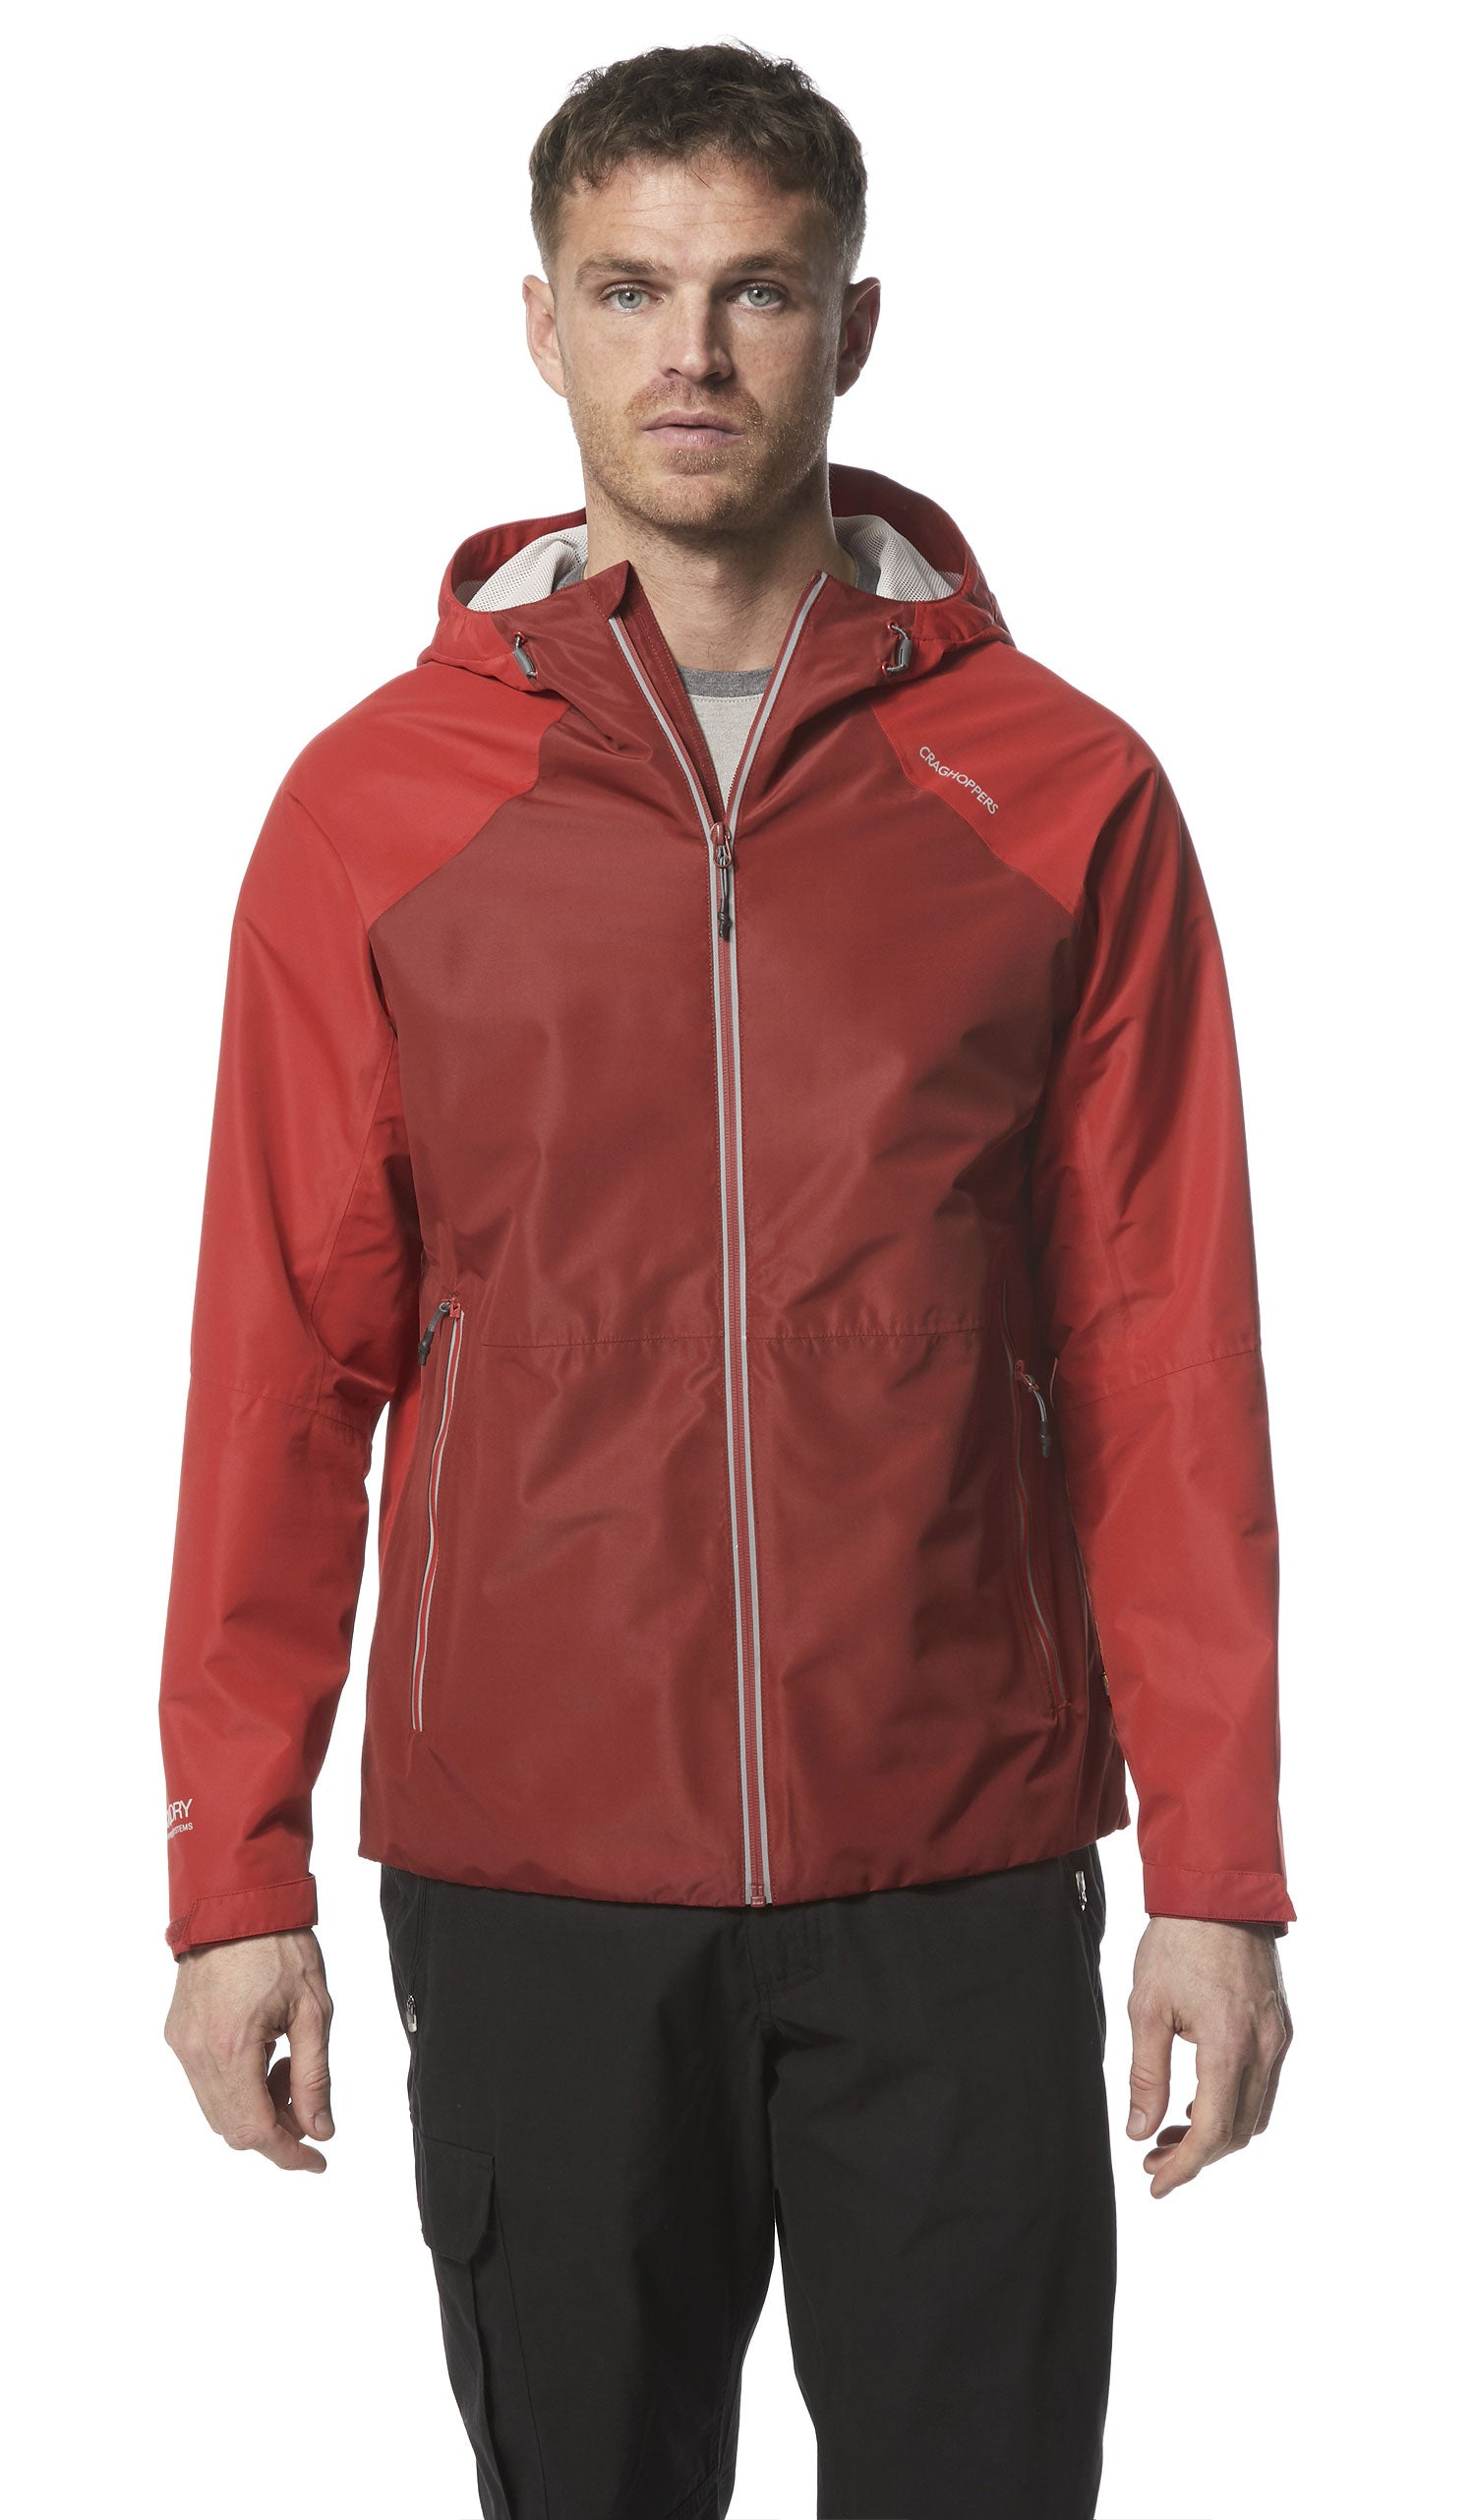 Man wearing Horizon Waterproof Jacket by Craghoppers in Garnet Red